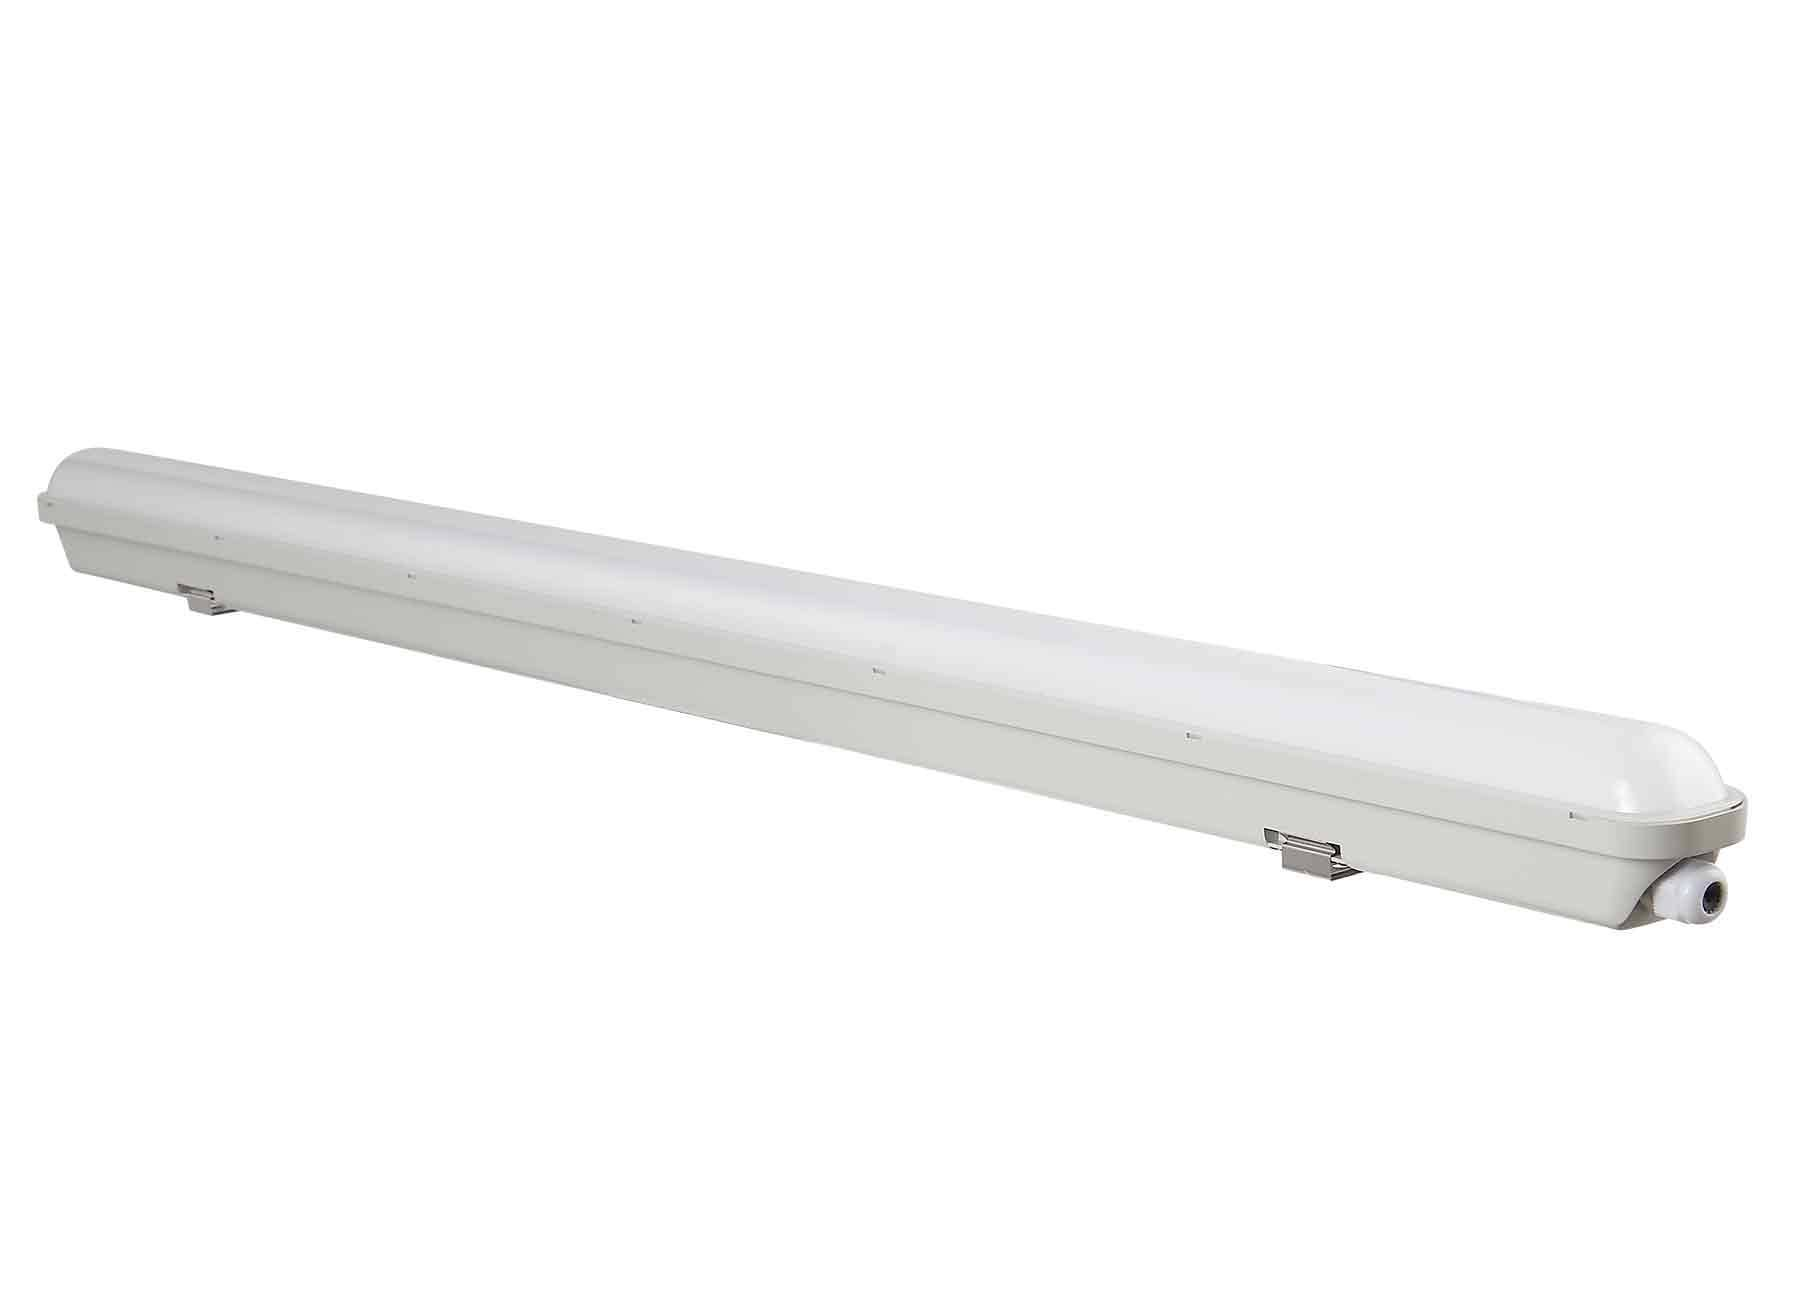 Led Ip65 Led Wannenleuchte 20w 5000k 1 800lm 1 180mm Ip65